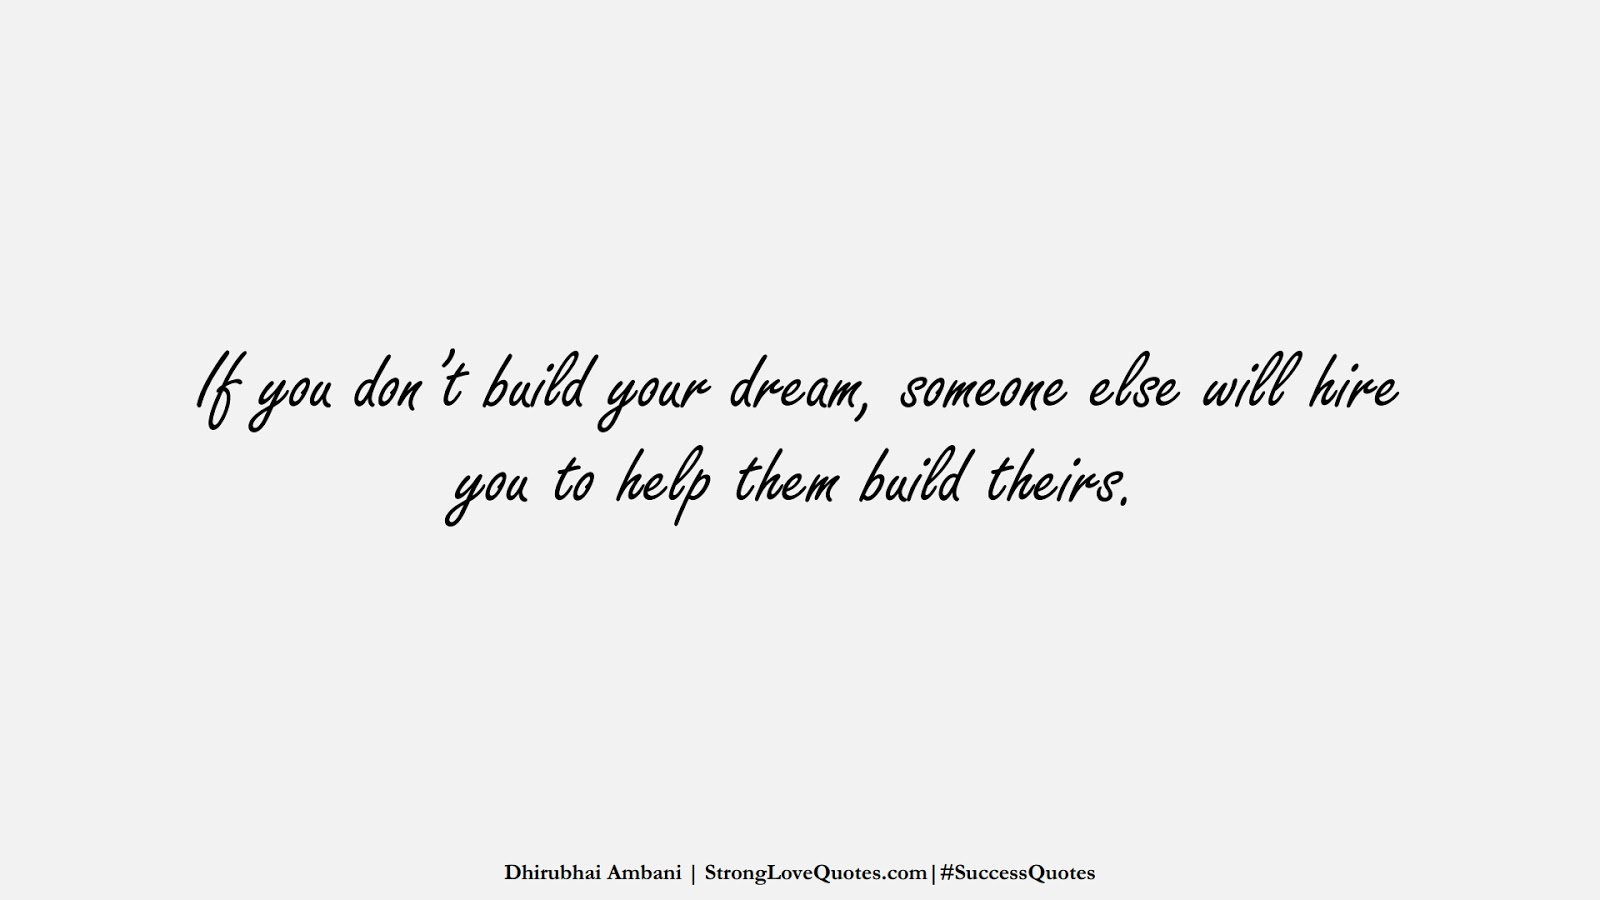 If you don't build your dream, someone else will hire you to help them build theirs. (Dhirubhai Ambani);  #SuccessQuotes